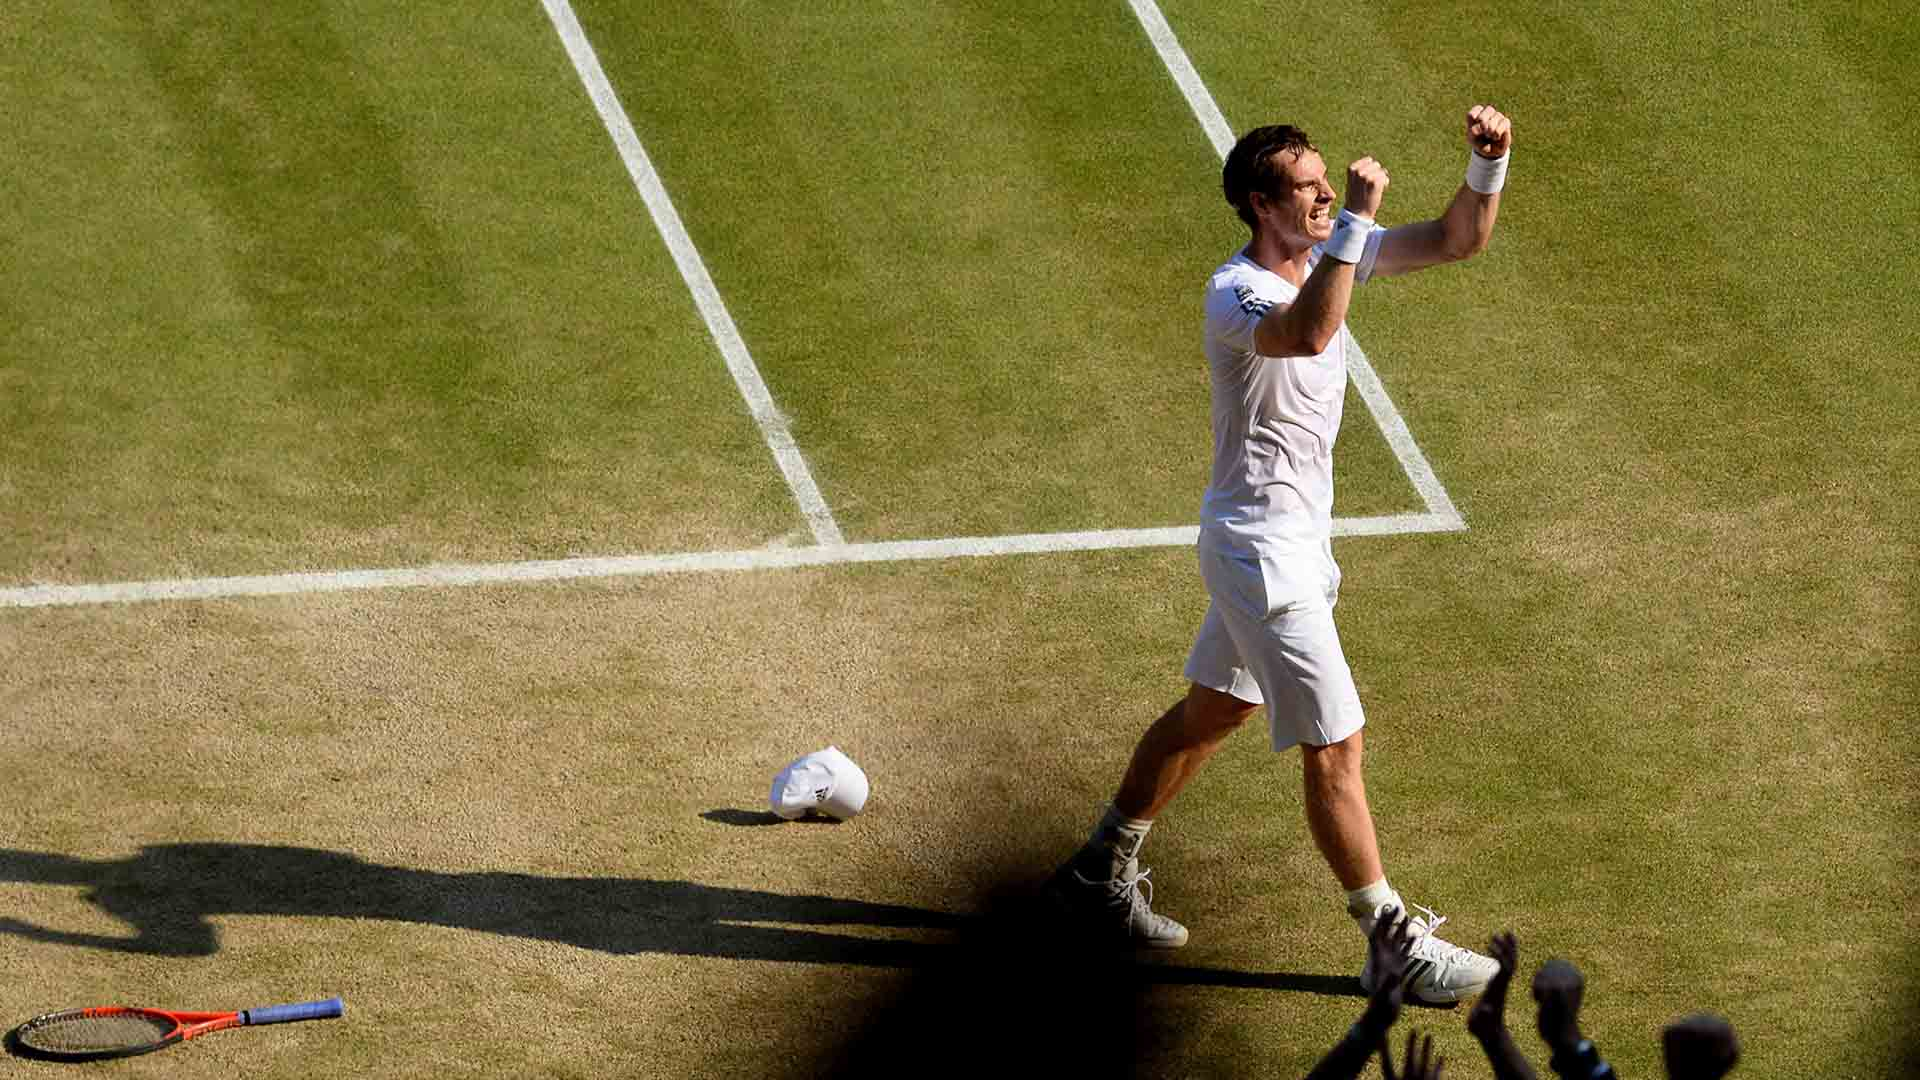 <a href='/en/players/andy-murray/mc10/overview'>Andy Murray</a> defeats <a href='/en/players/novak-djokovic/d643/overview'>Novak Djokovic</a> in straight sets to claim his maiden <a href='/en/tournaments/wimbledon/540/overview'>Wimbledon</a> title in 2013.